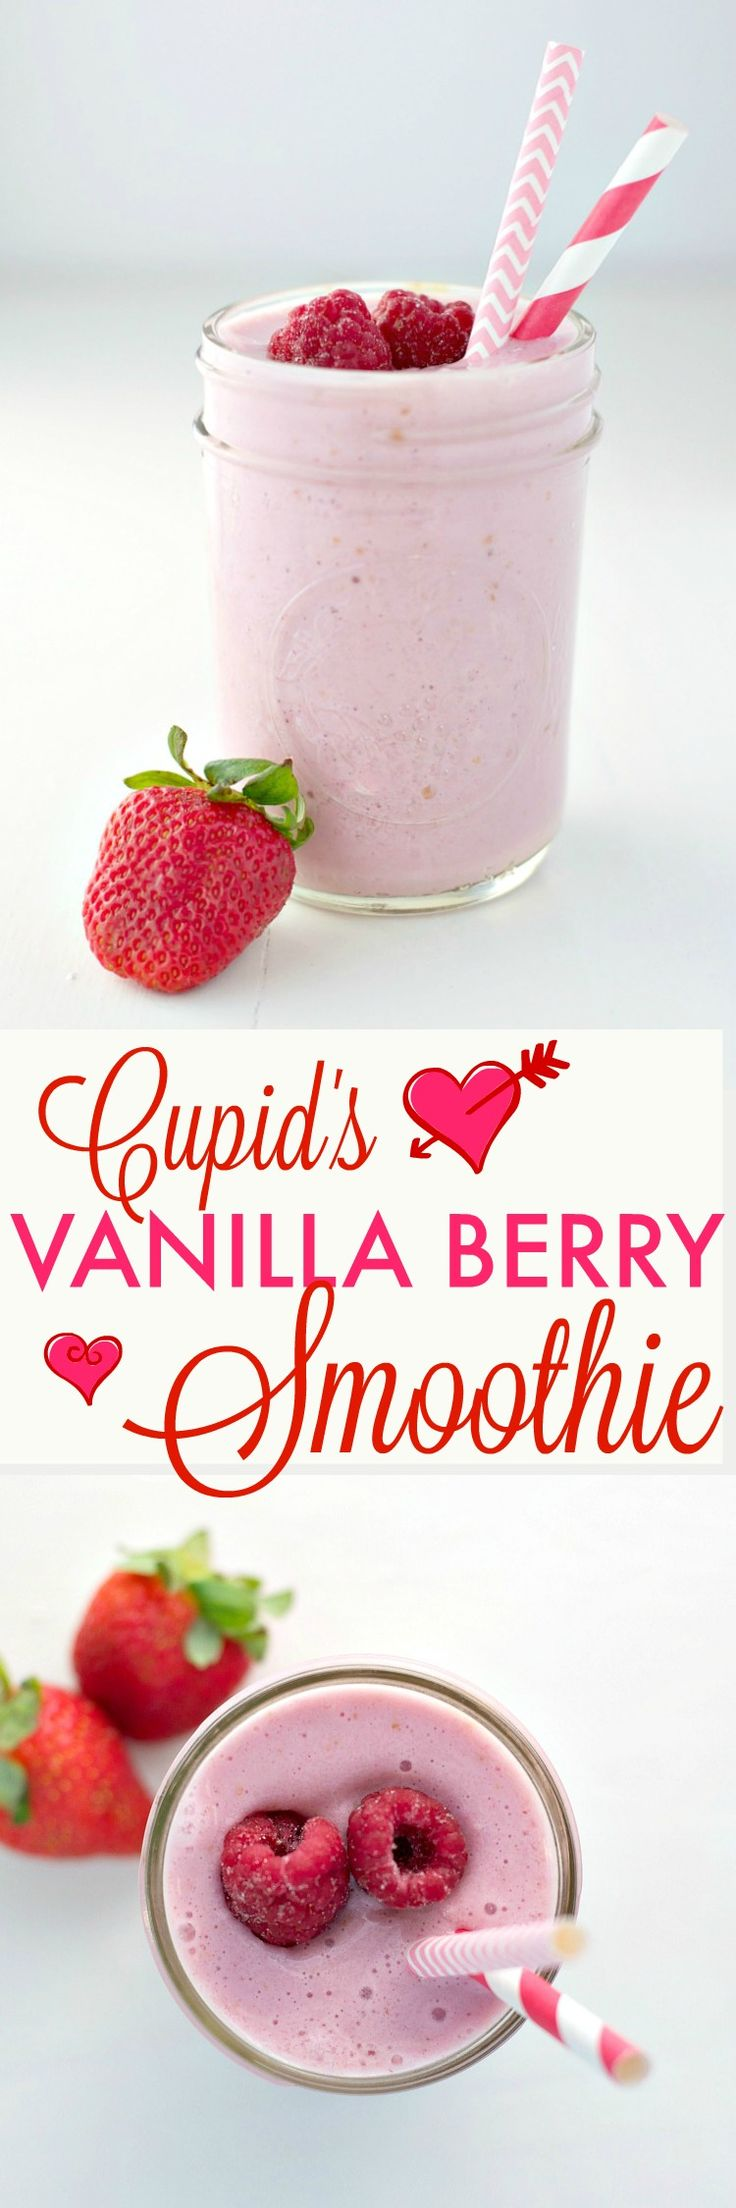 Start your day with Cupid's Vanilla Berry Smoothie! It's a two-minute breakfast solution that will help your family lead an active and healthy lifestyle...and it's 100% kid-approved! @HorizonOrganic #ad #HorizonRecipes